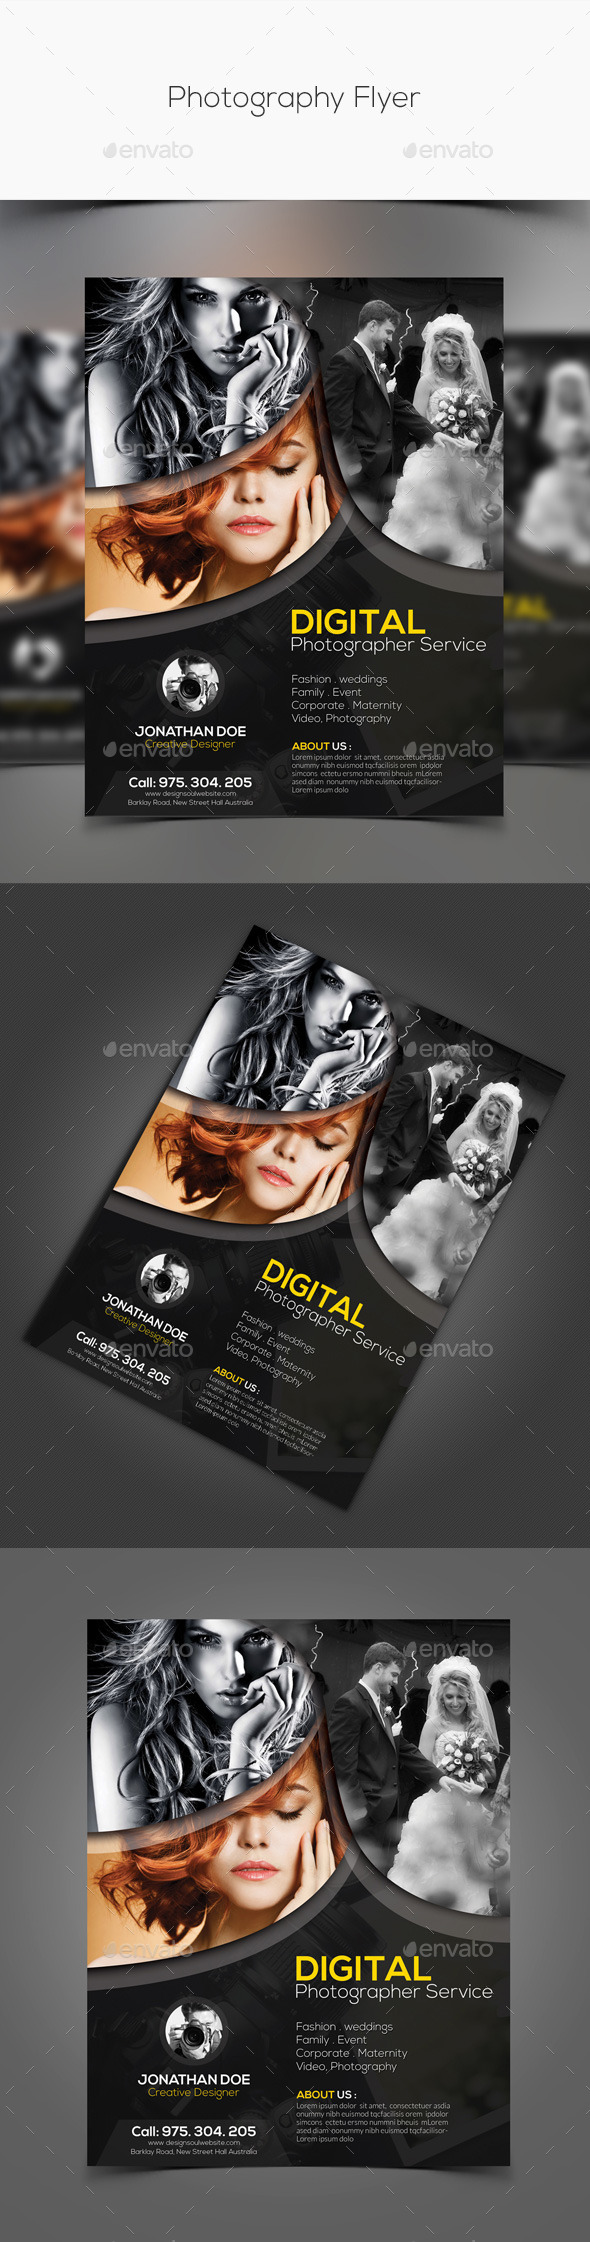 GraphicRiver Photography Flyer 11267733